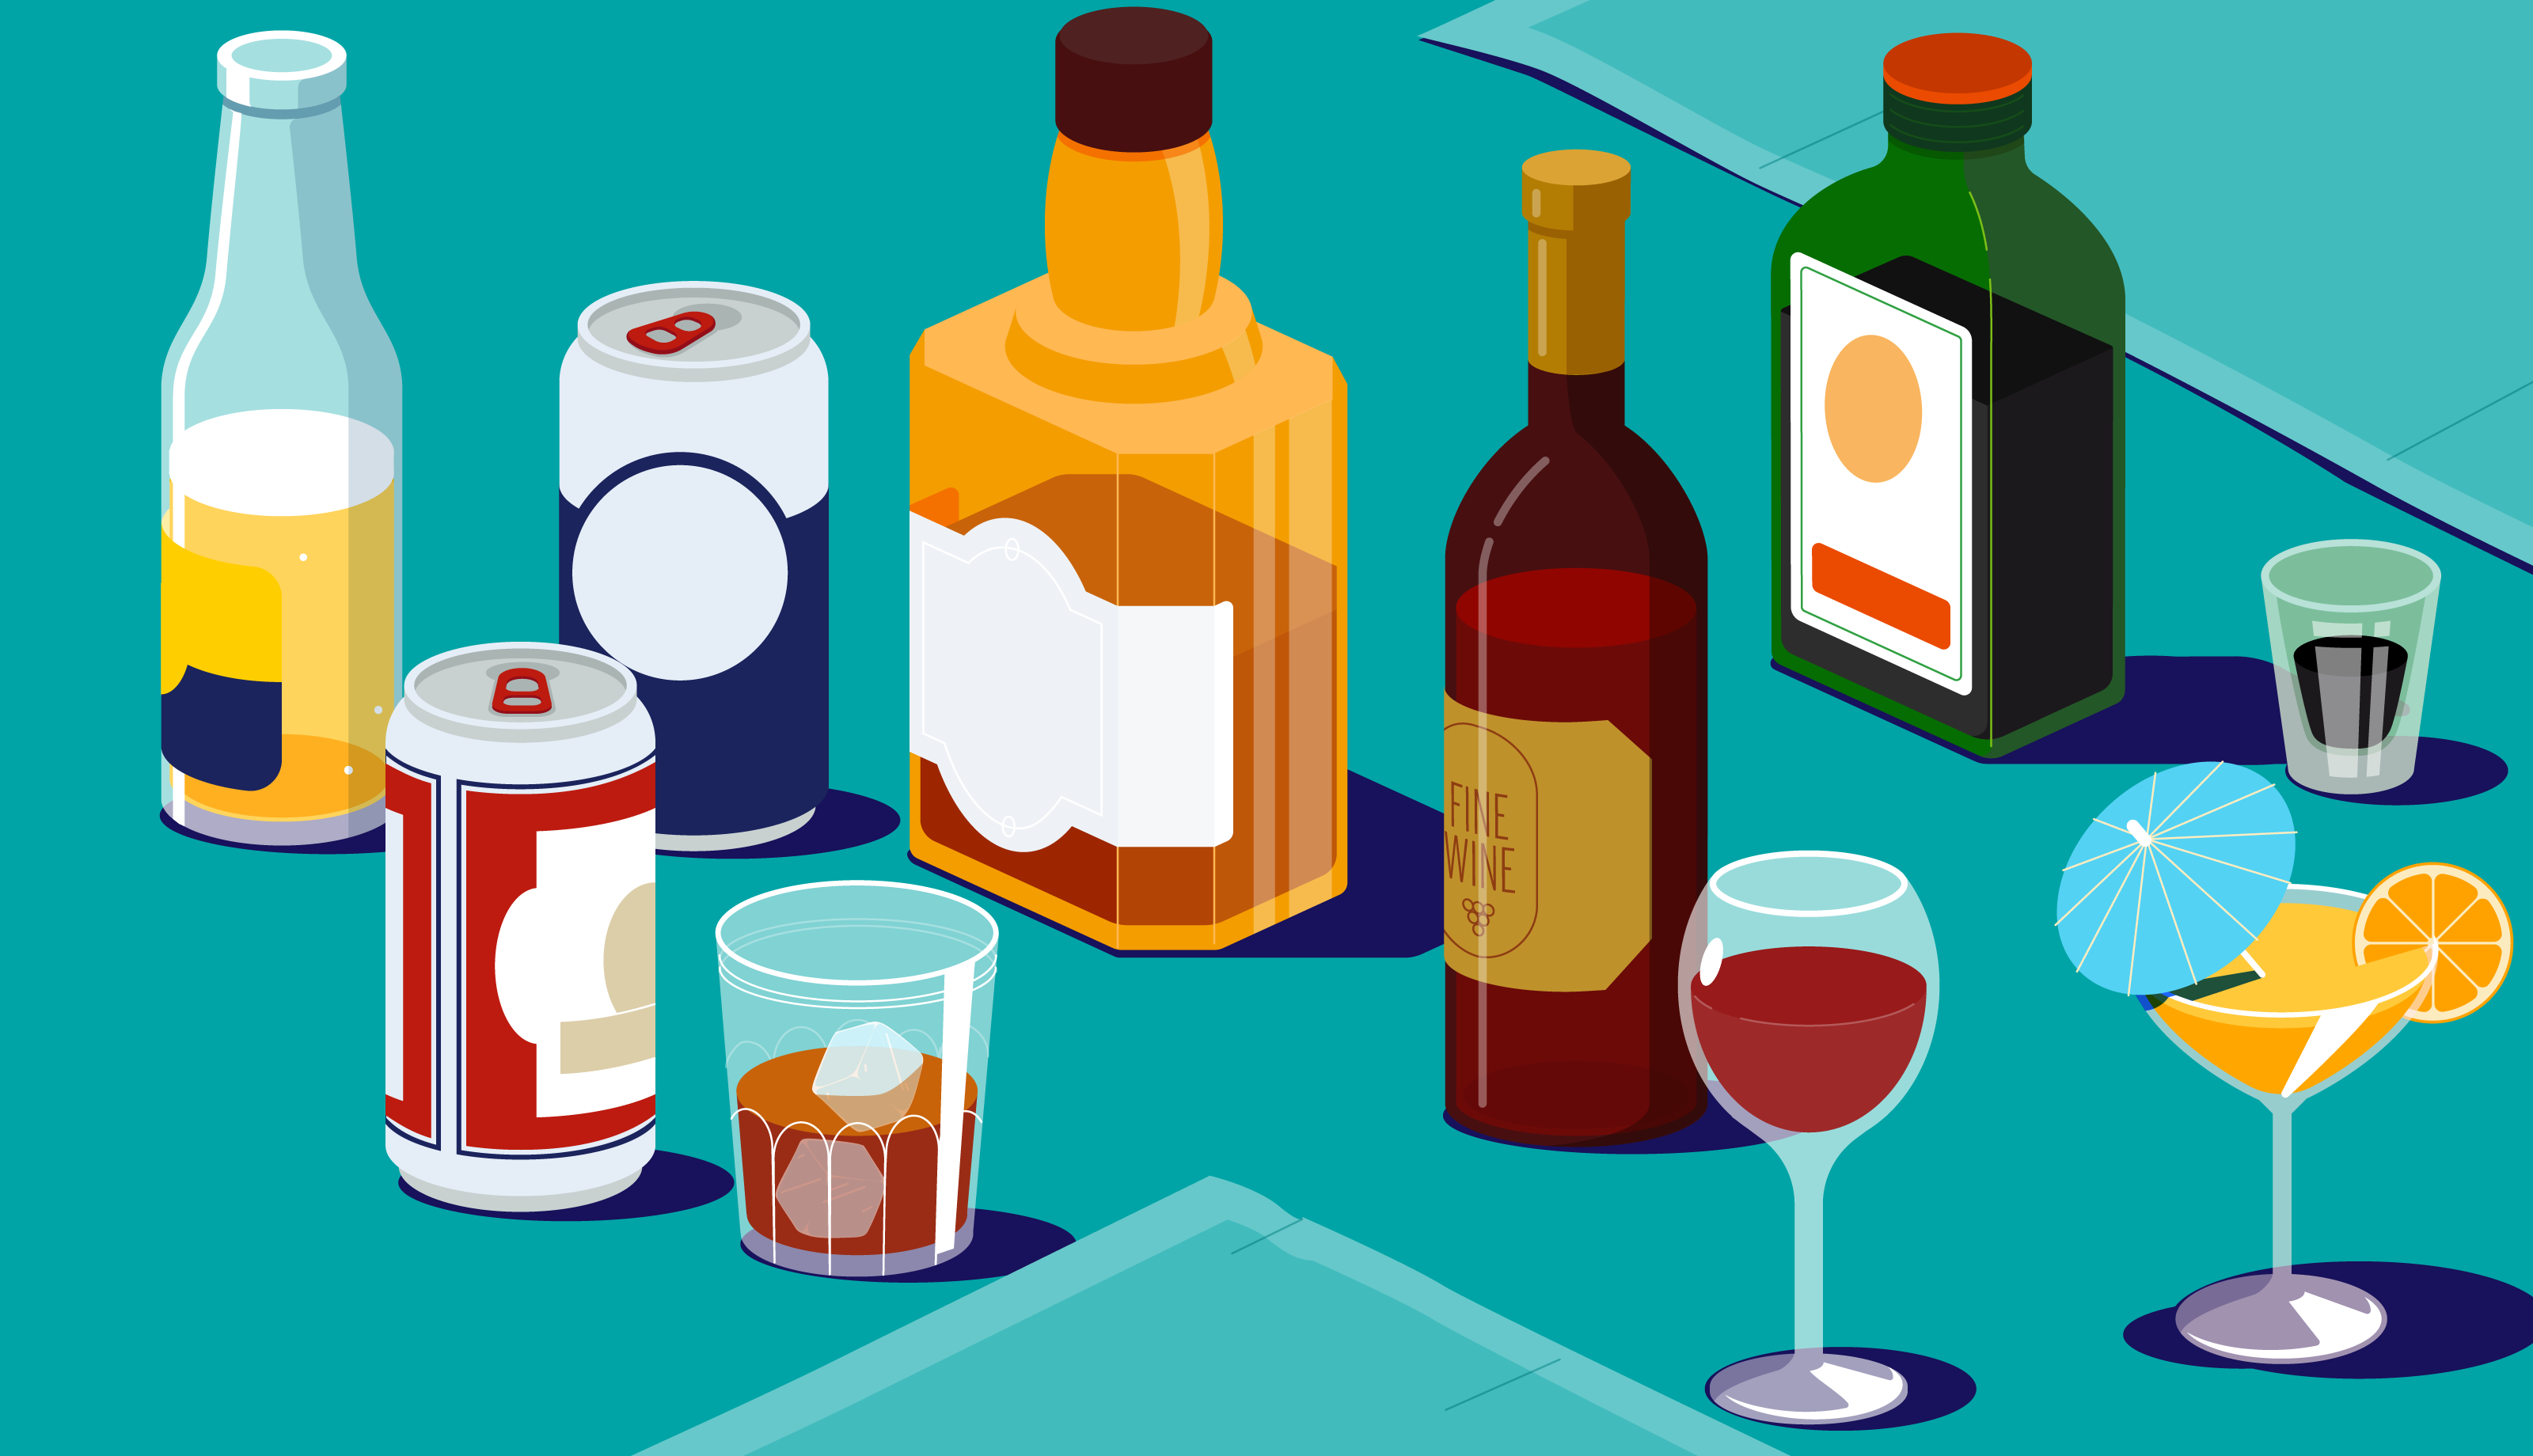 2020-10-08-1--Allergic-to-alcohol-201012-